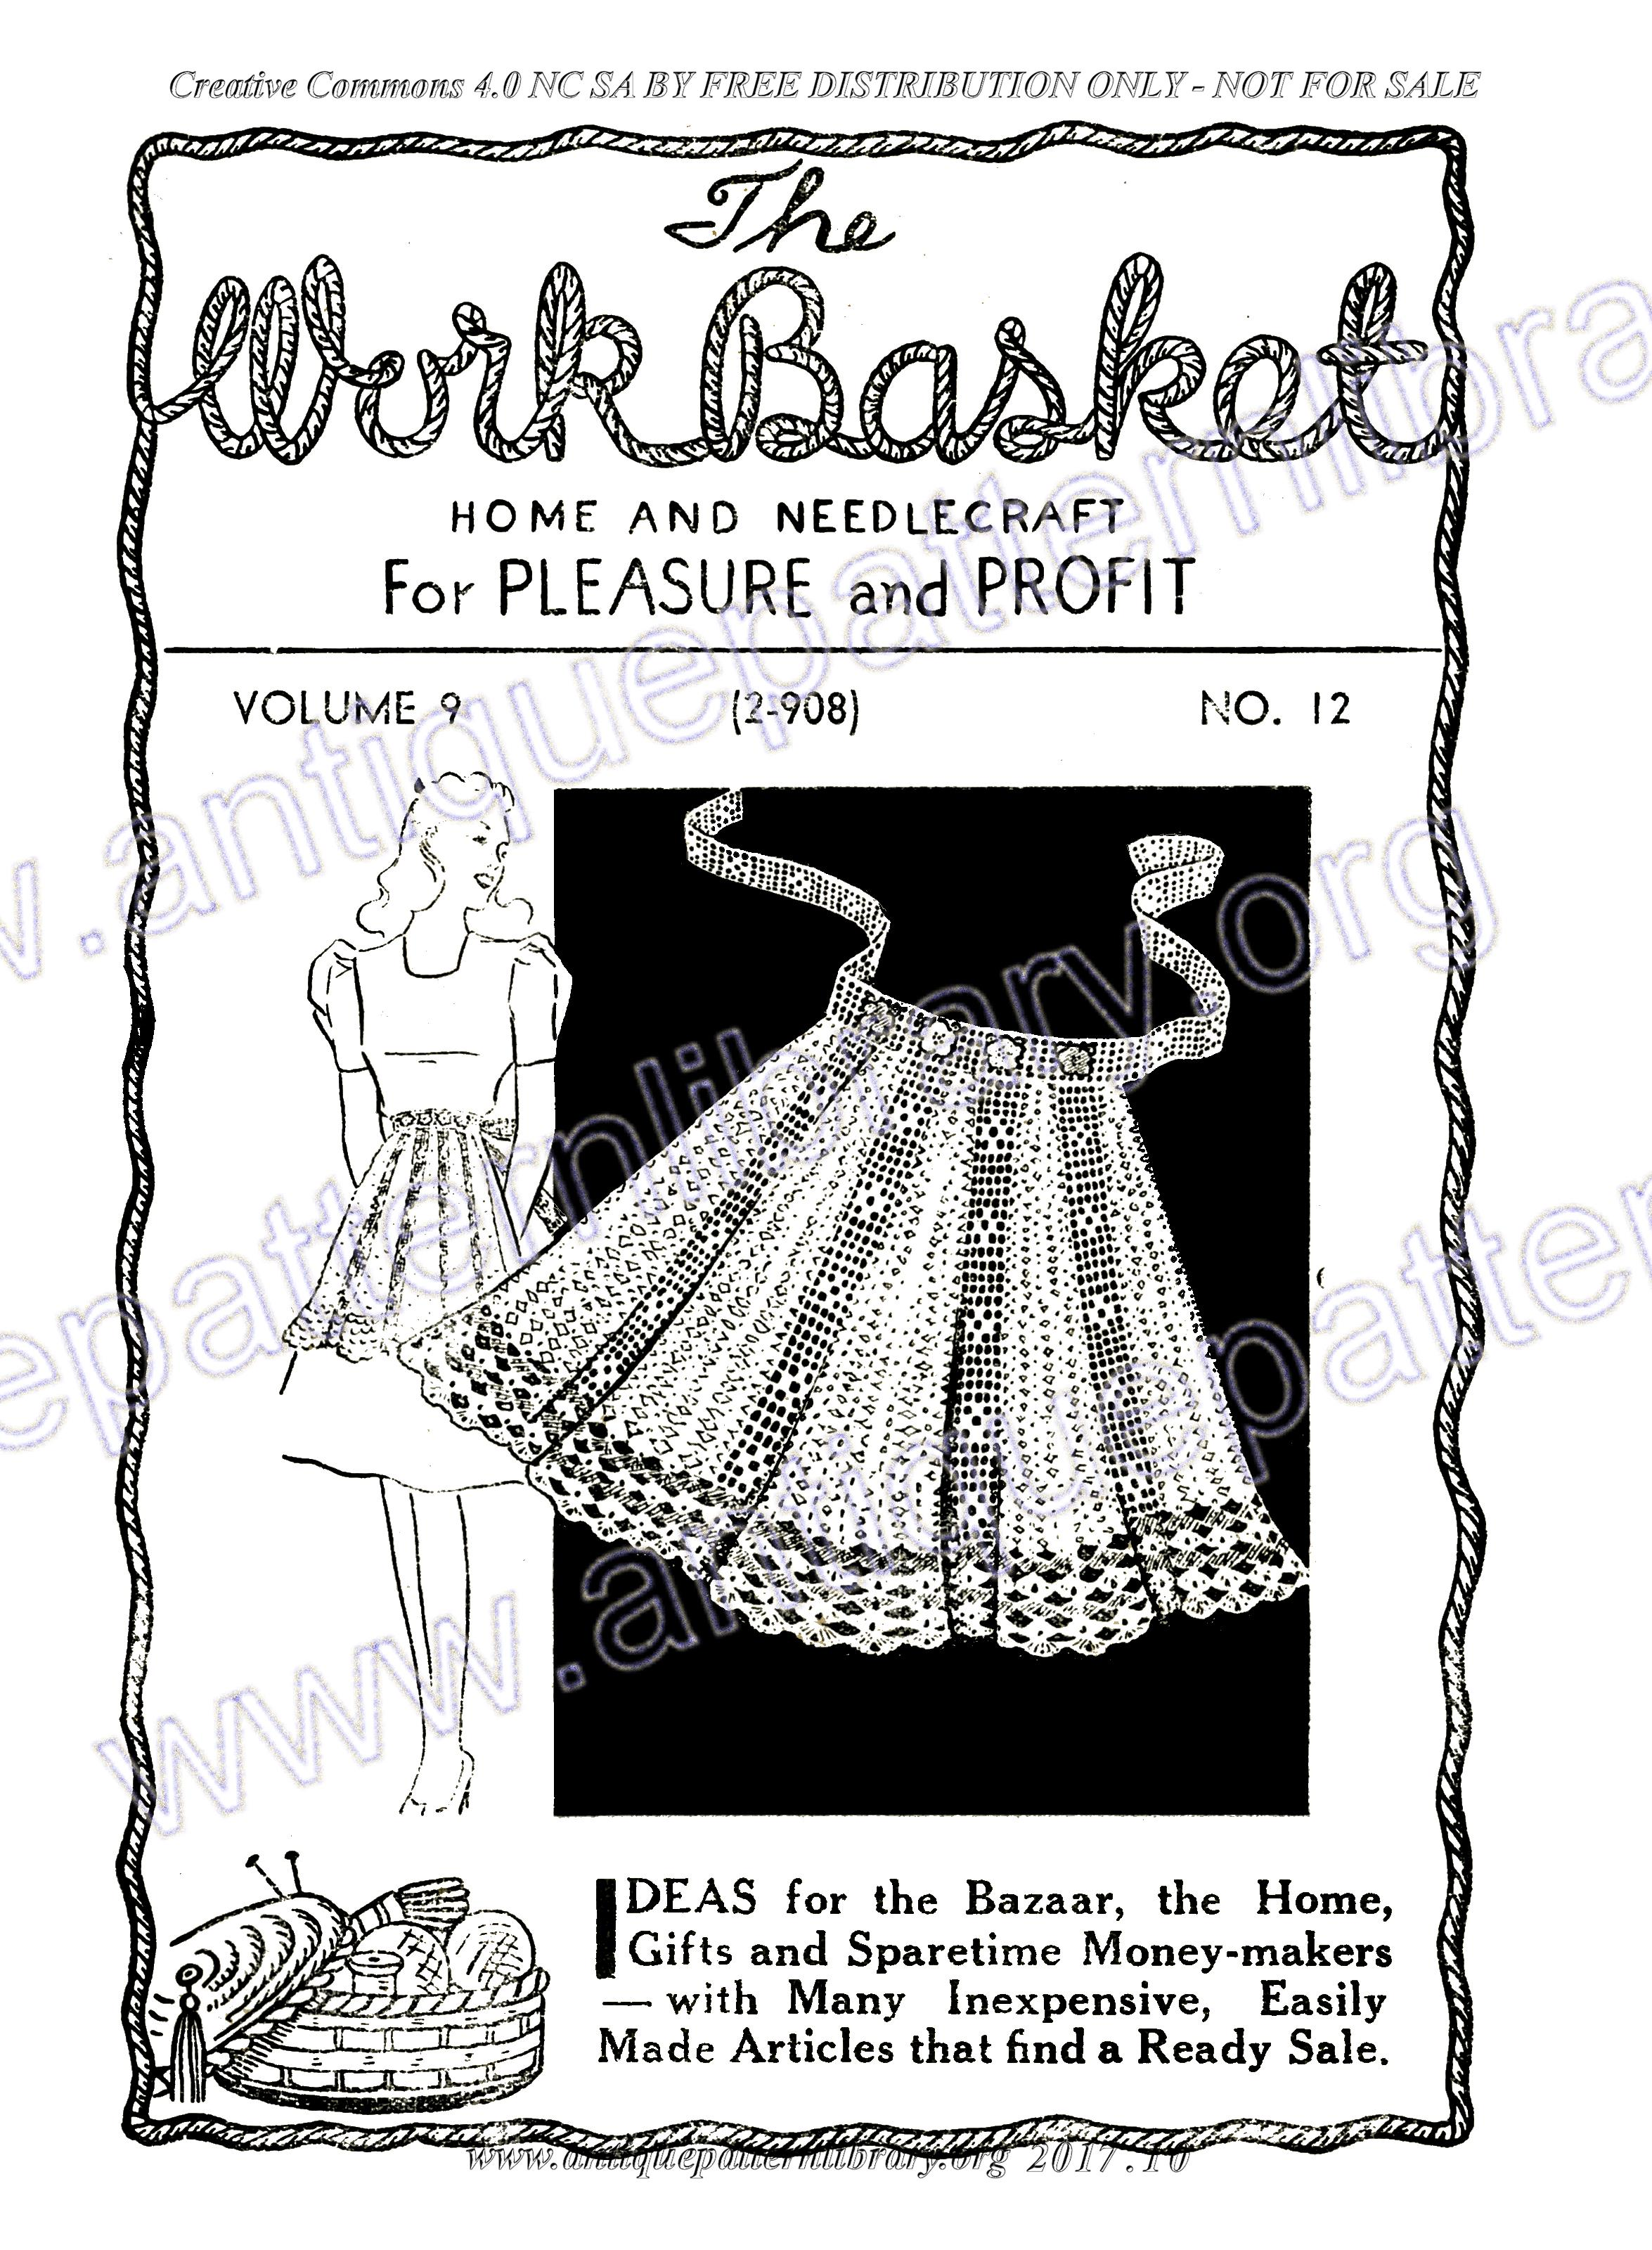 APL - H-ME001 The Workbasket Magazine Vol. 9 No. 12 Page 1 - Front cover